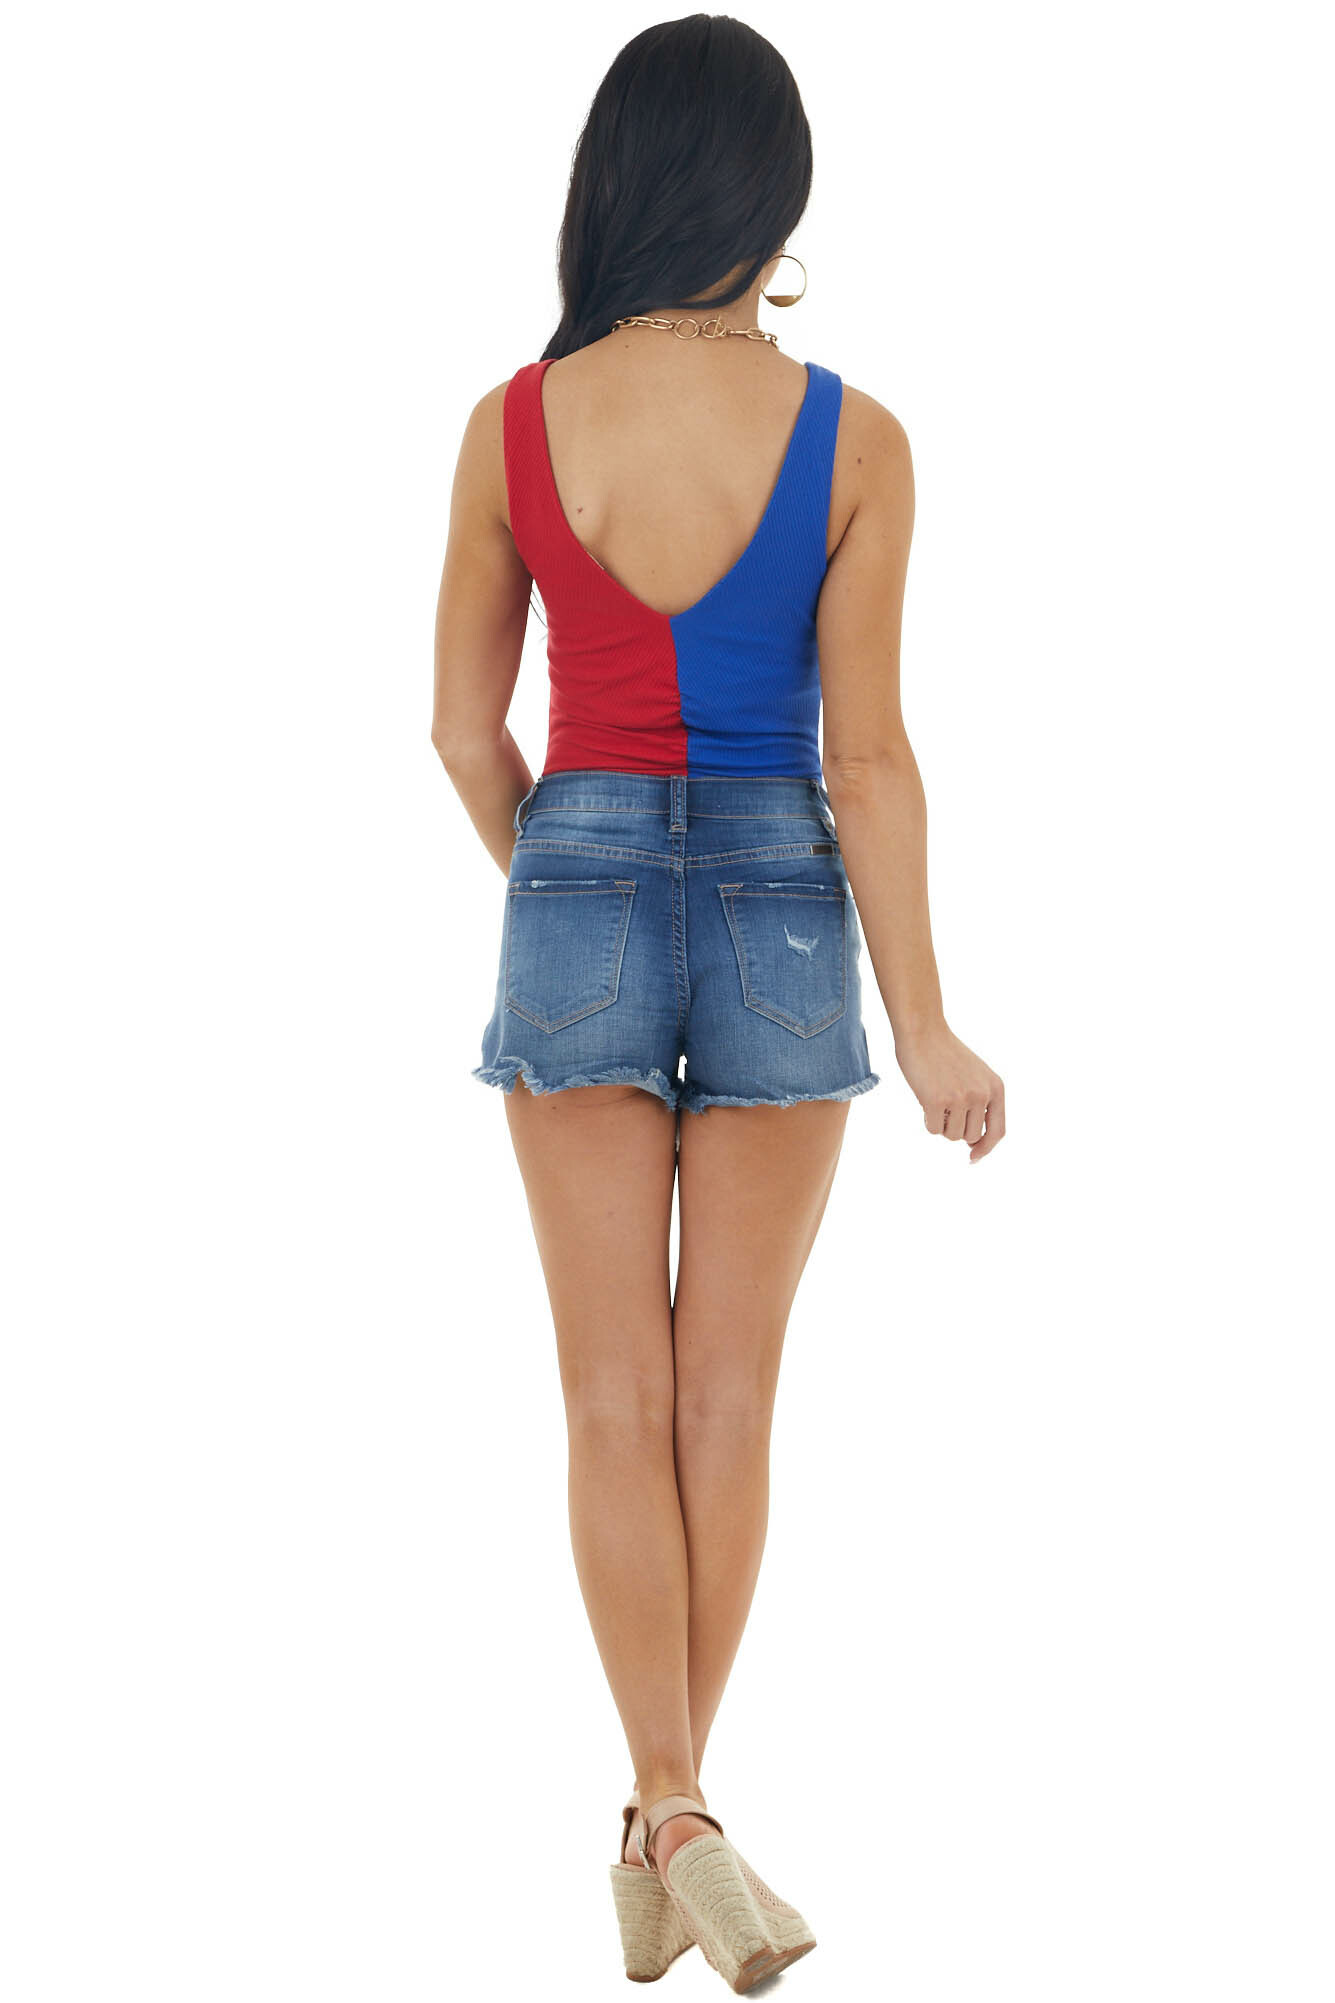 Royal Blue and Ruby Sleeveless Bodysuit with Ruching Details